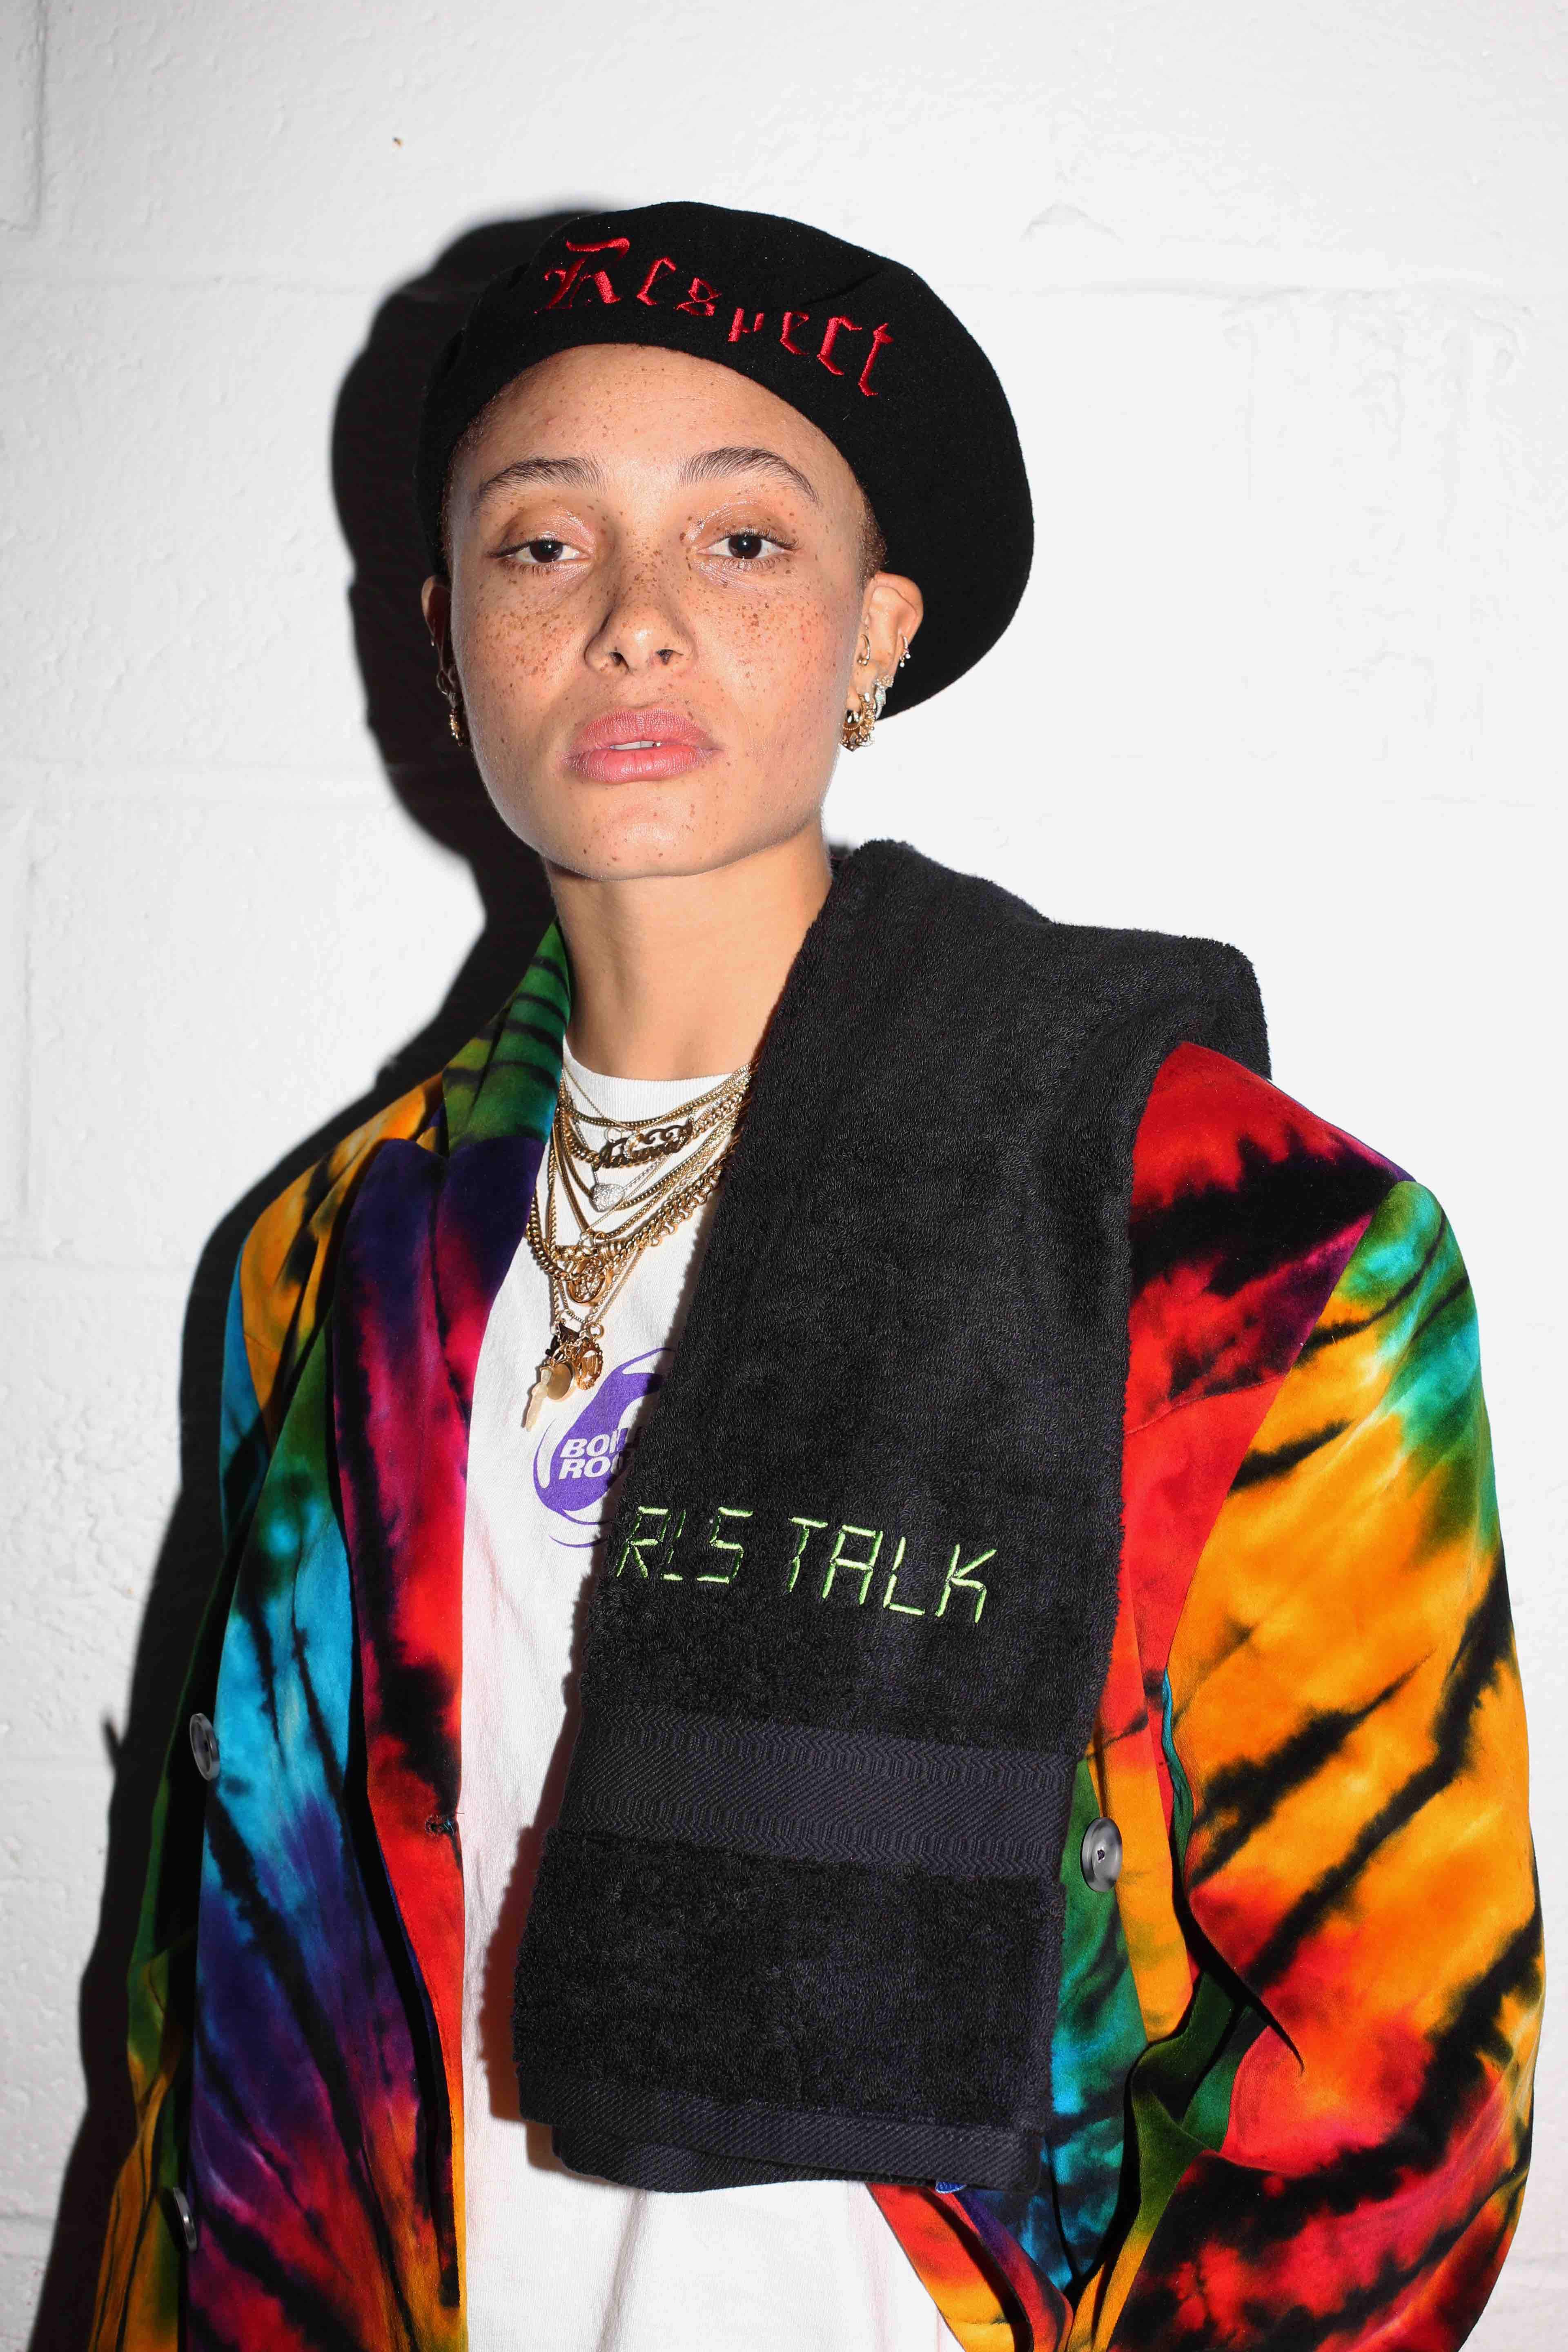 Adwoa Aboah International Women's day boiler room gig